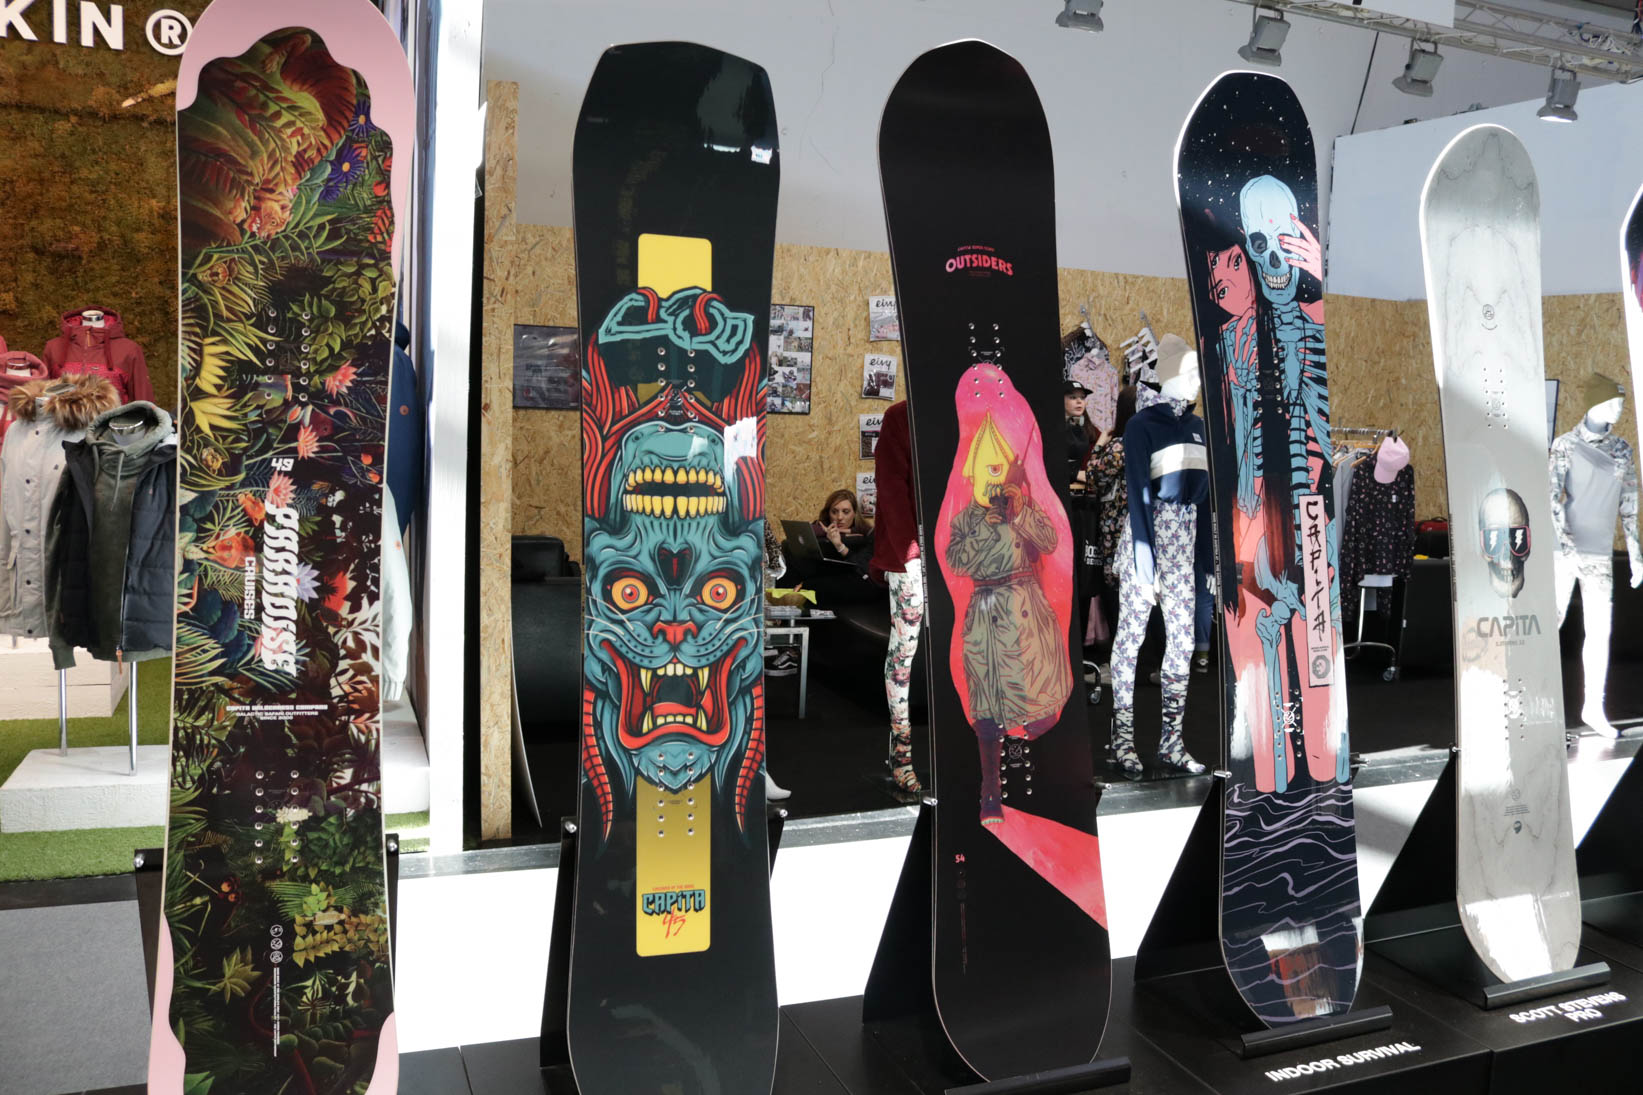 Capita (links nach rechts): Paradise Cruises, Children of the Gnar, The Outsiders, Indoor Suvival, Scott Stevens Pro